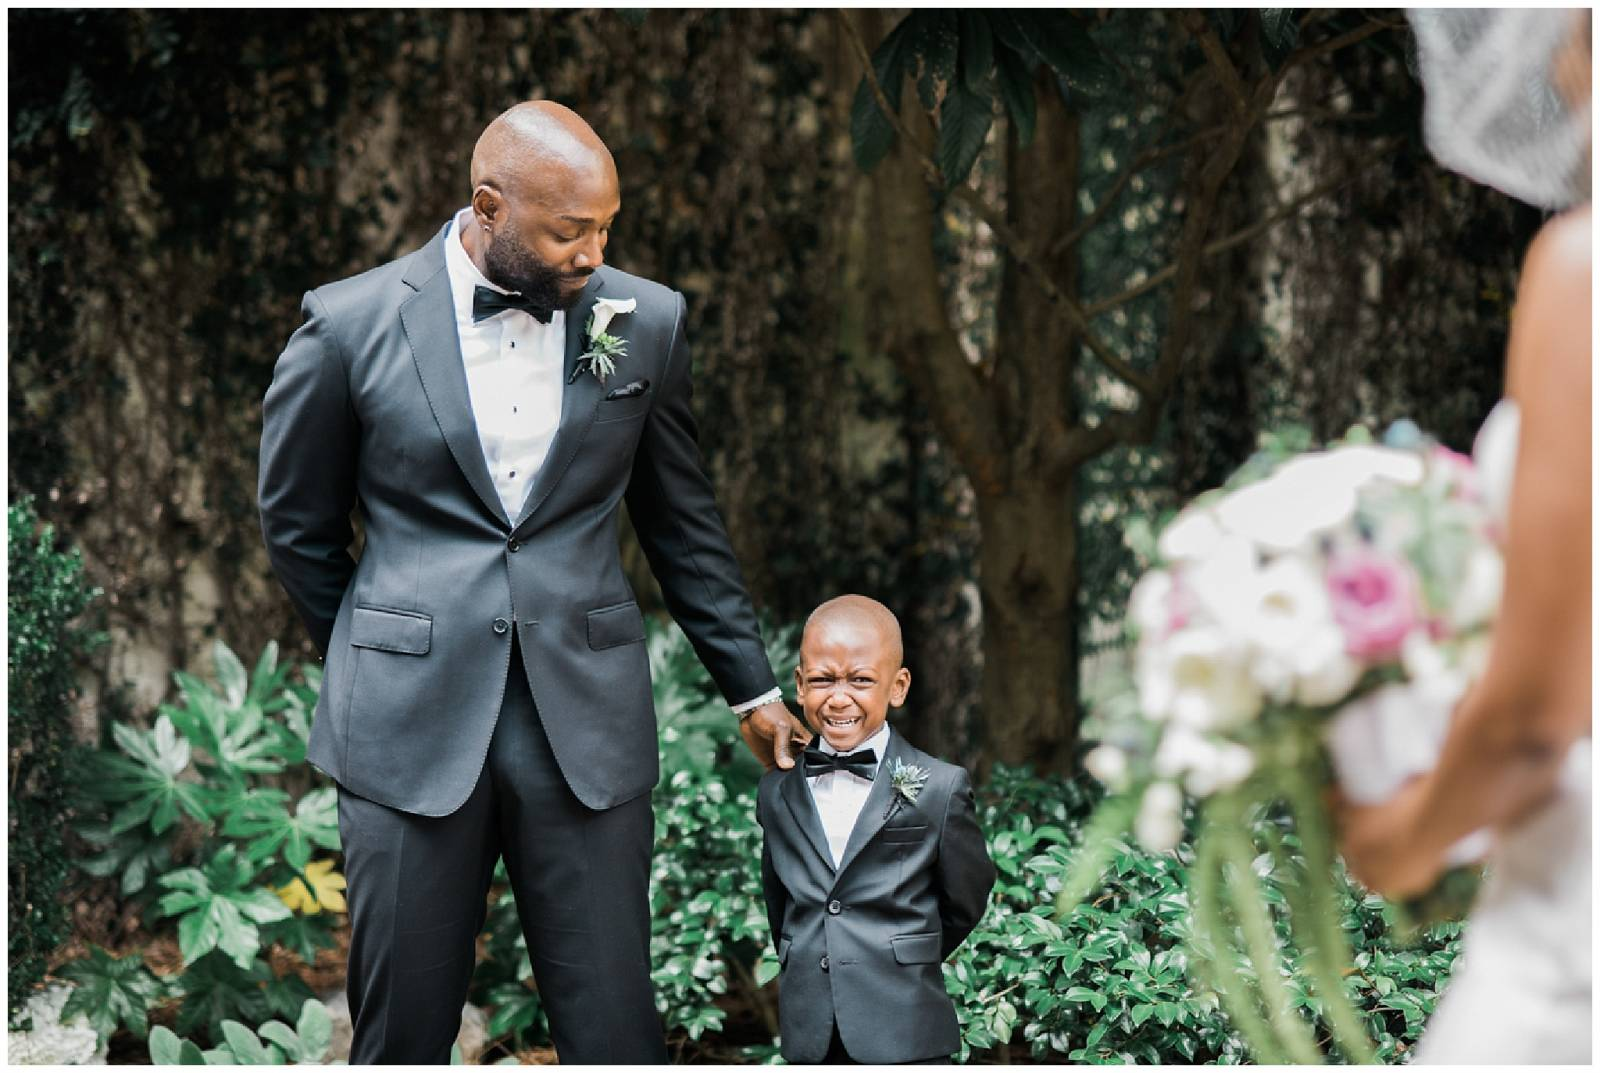 classic wedding photo of groom and son captured by Ali & Garrett Photographers